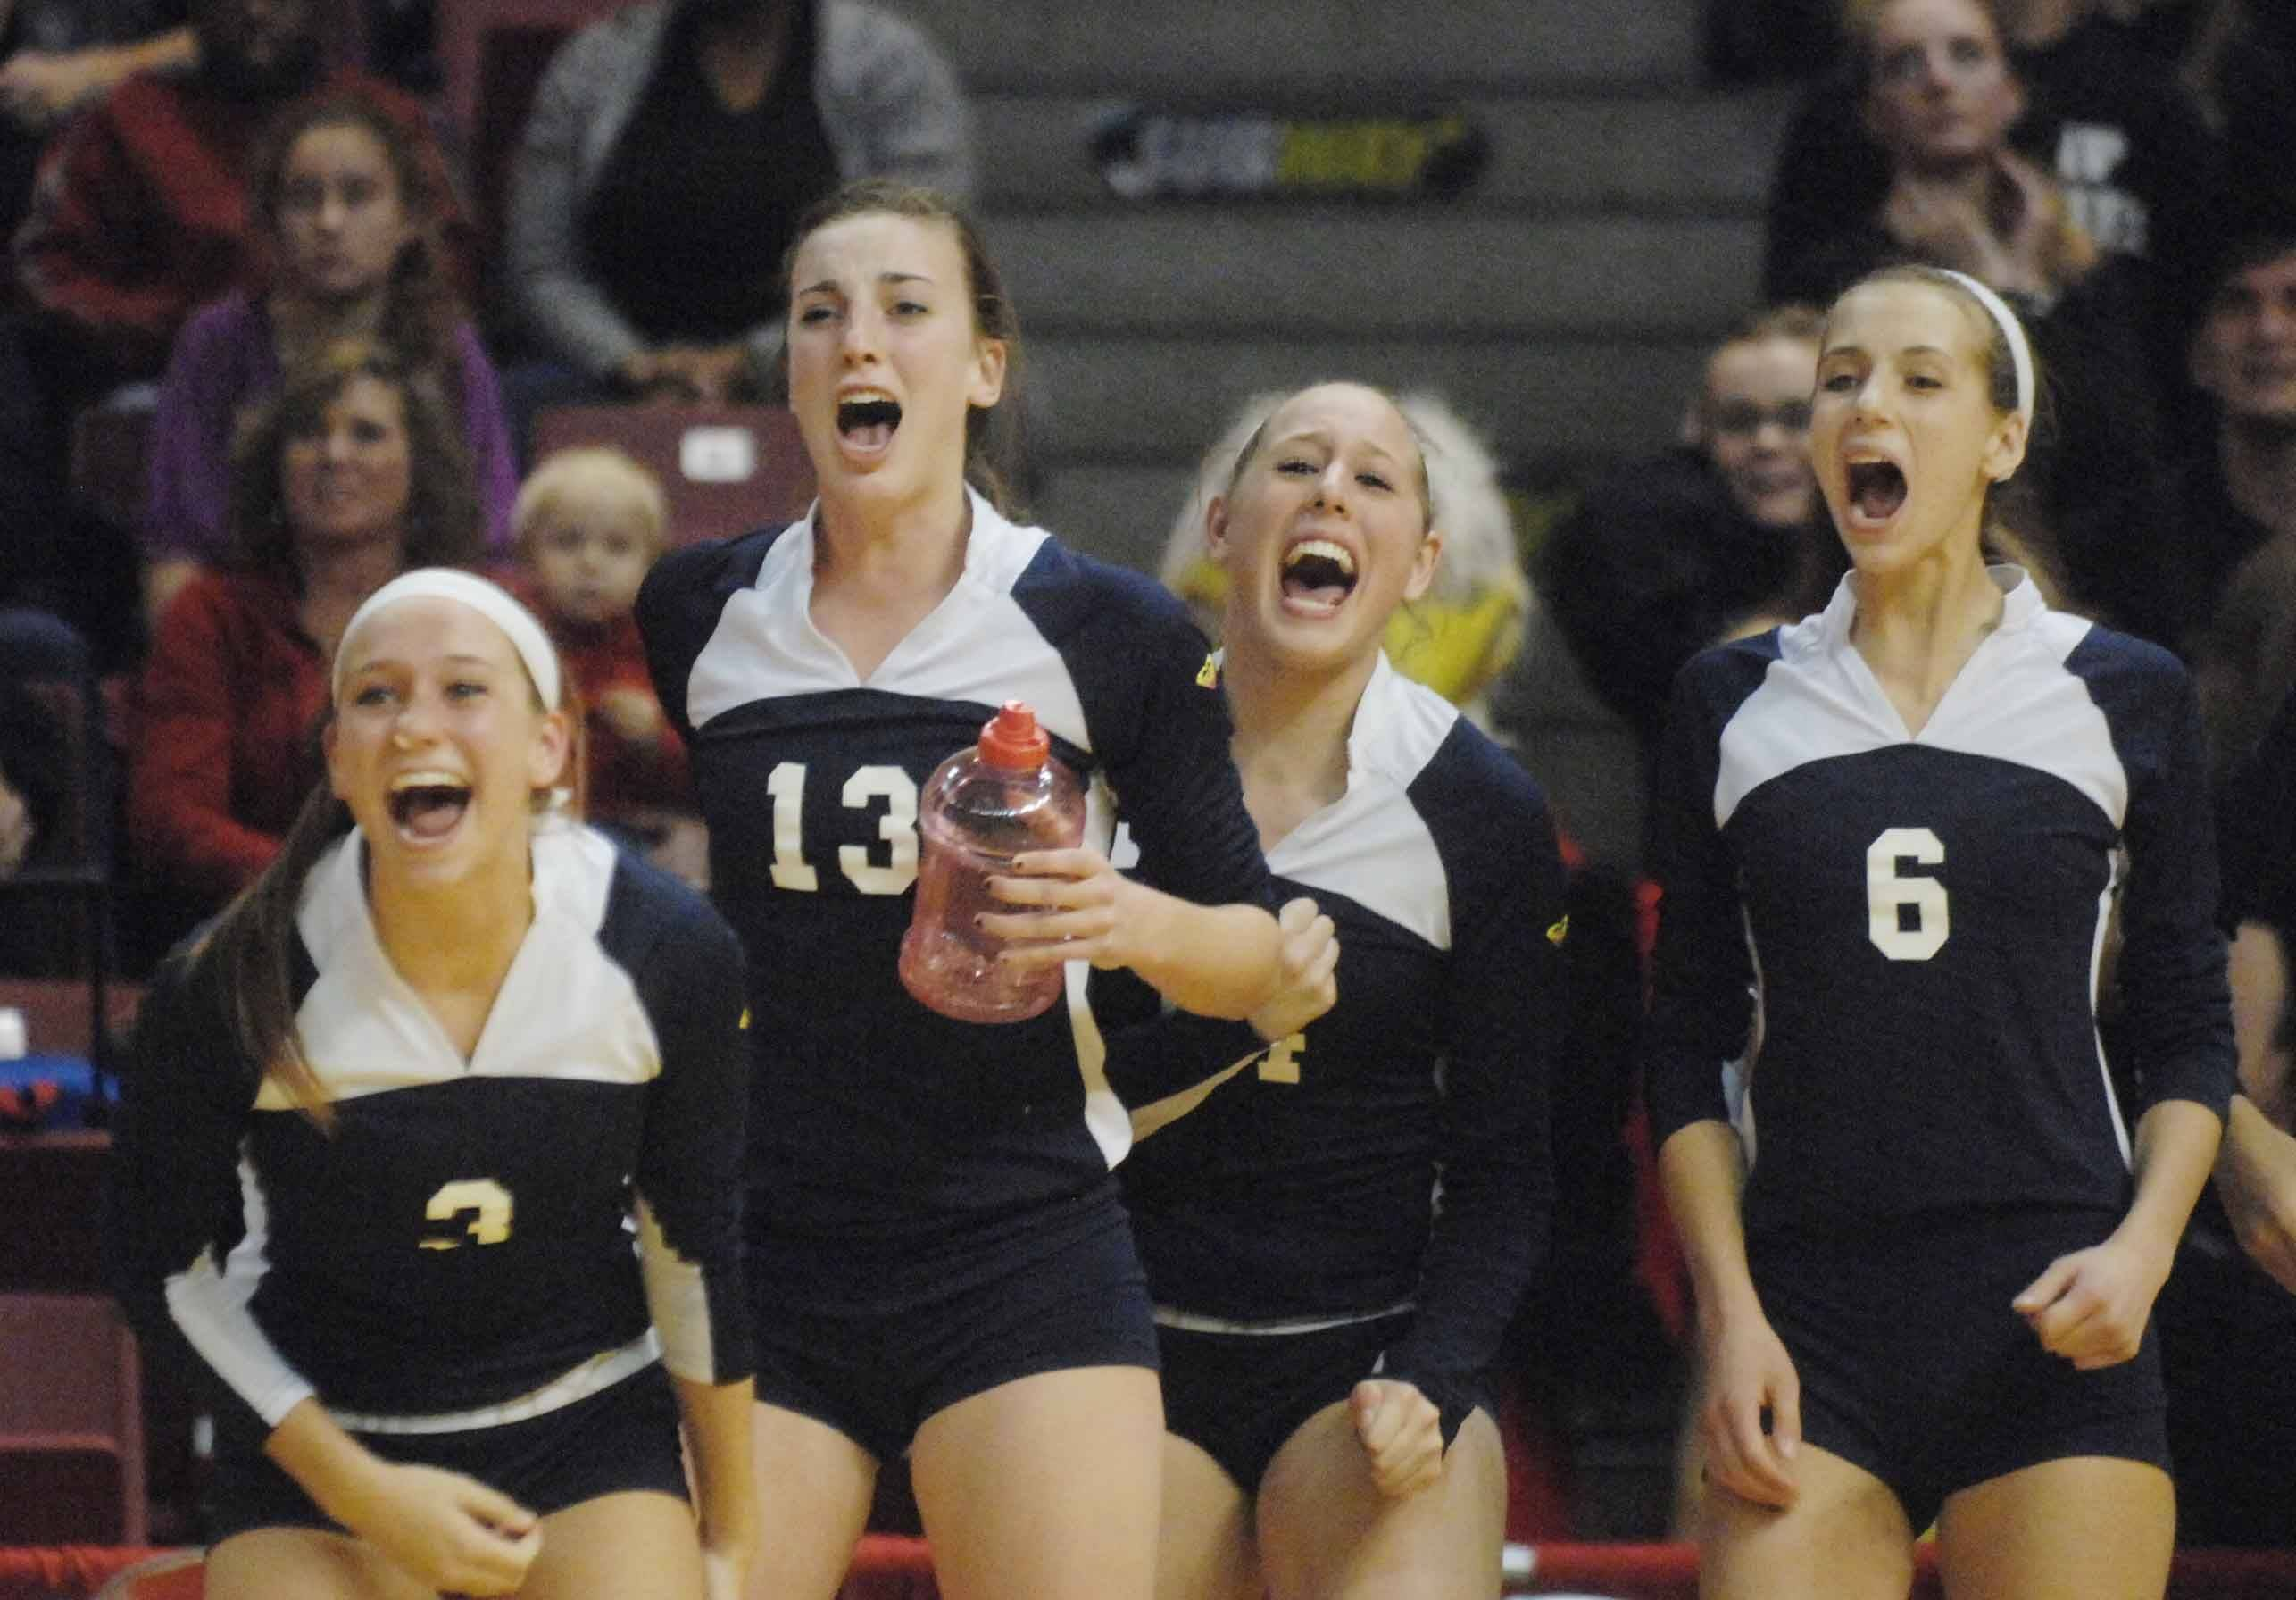 The Cary-Grove girls volleyball team had plenty of excitement at Redbird Arena this weekend, despite coming up short in the Class 4A championship match for the second straight year.